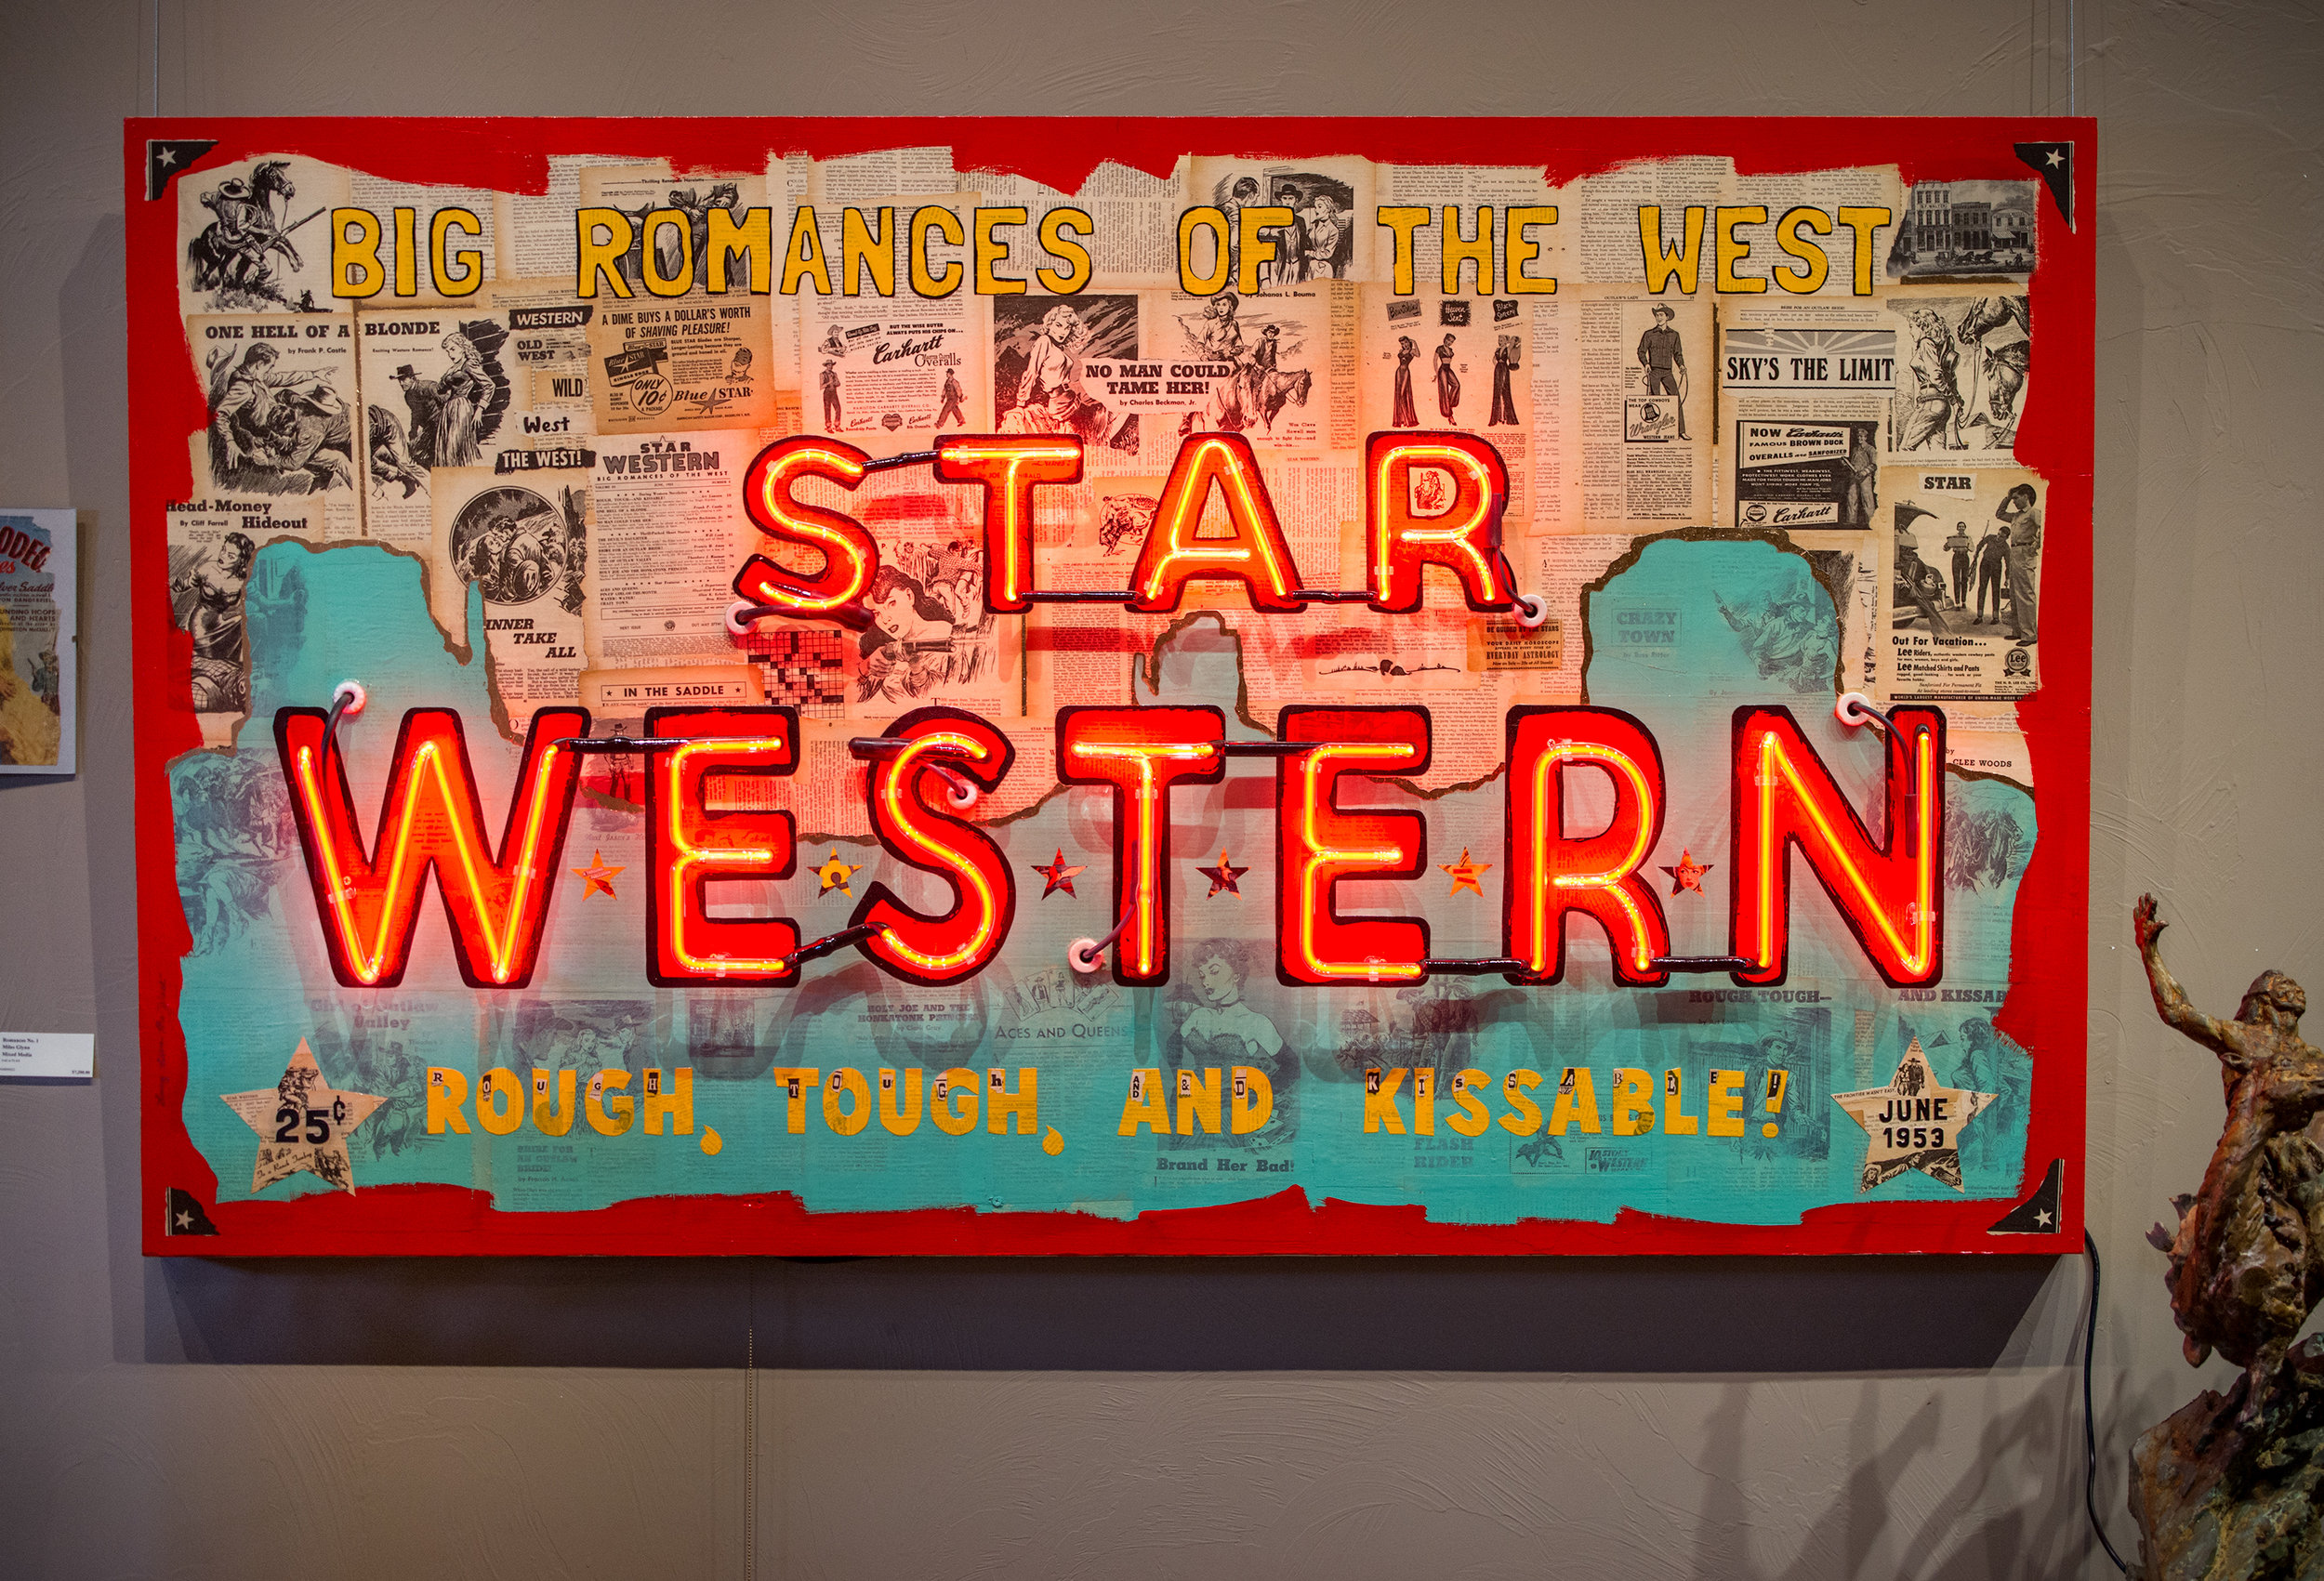 "Star Western No. 1 || 72"" x 42"" 